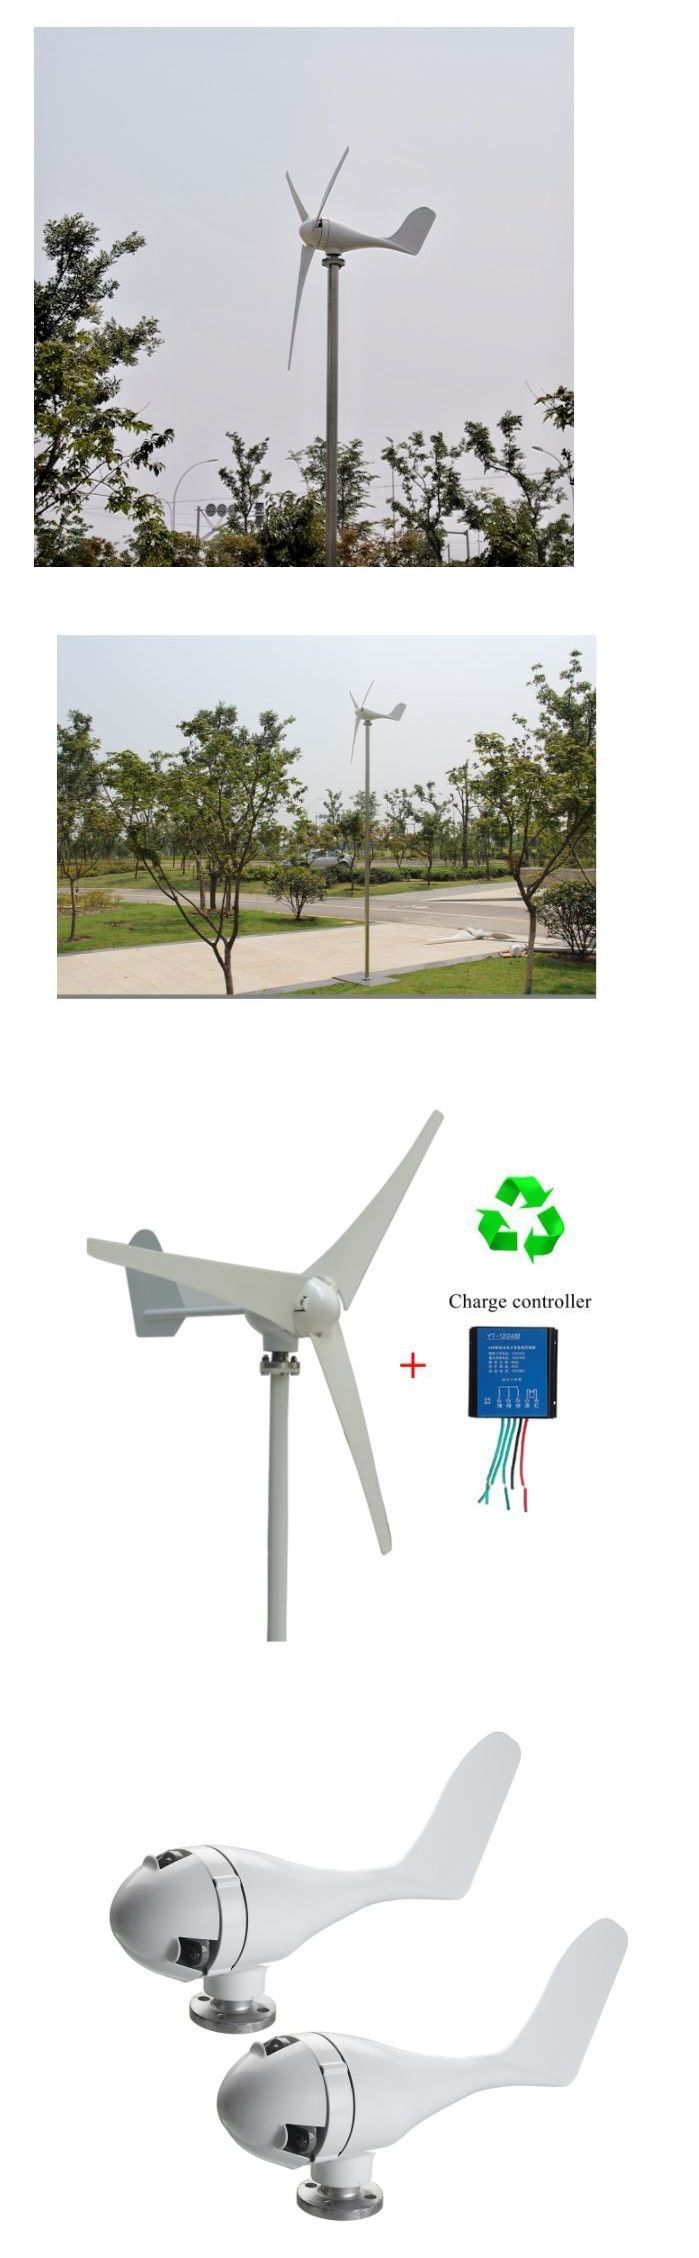 Wind Generators 121837: 400W Wind Turbine Generator 12V 24V 3 5 Blade Power Supply + Charge Controller -> BUY IT NOW ONLY: $169.99 on eBay!